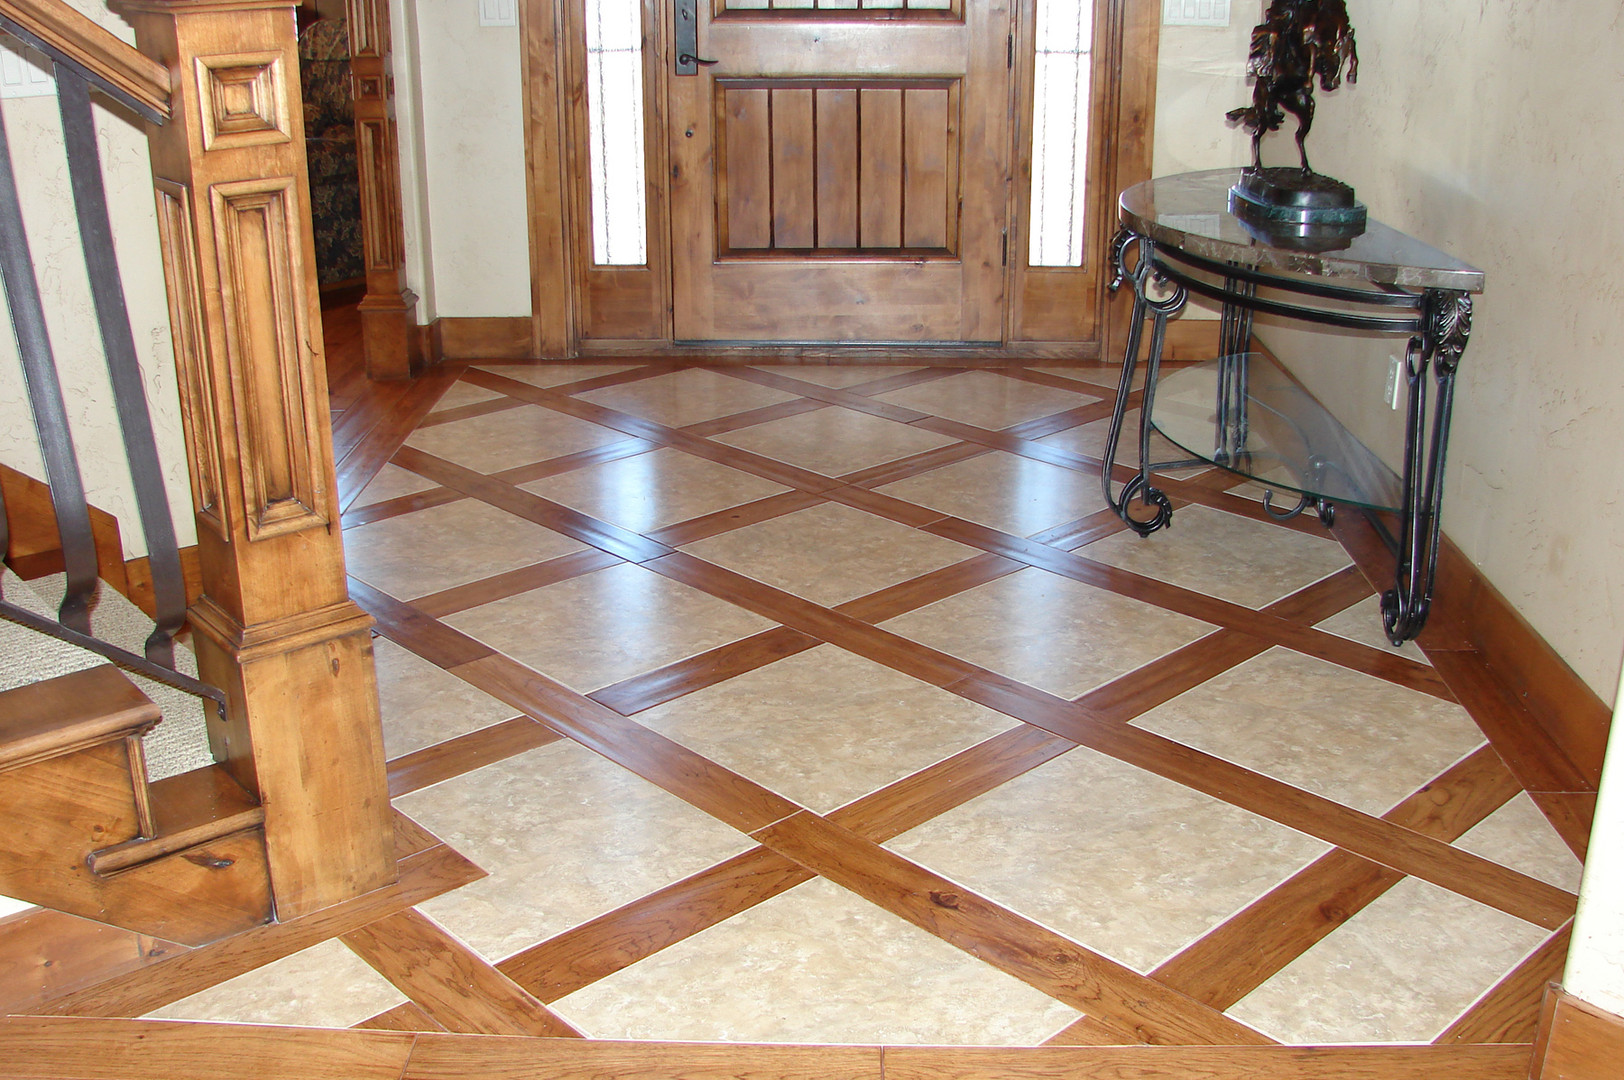 hardwood-floor-with-tile-3.jpg